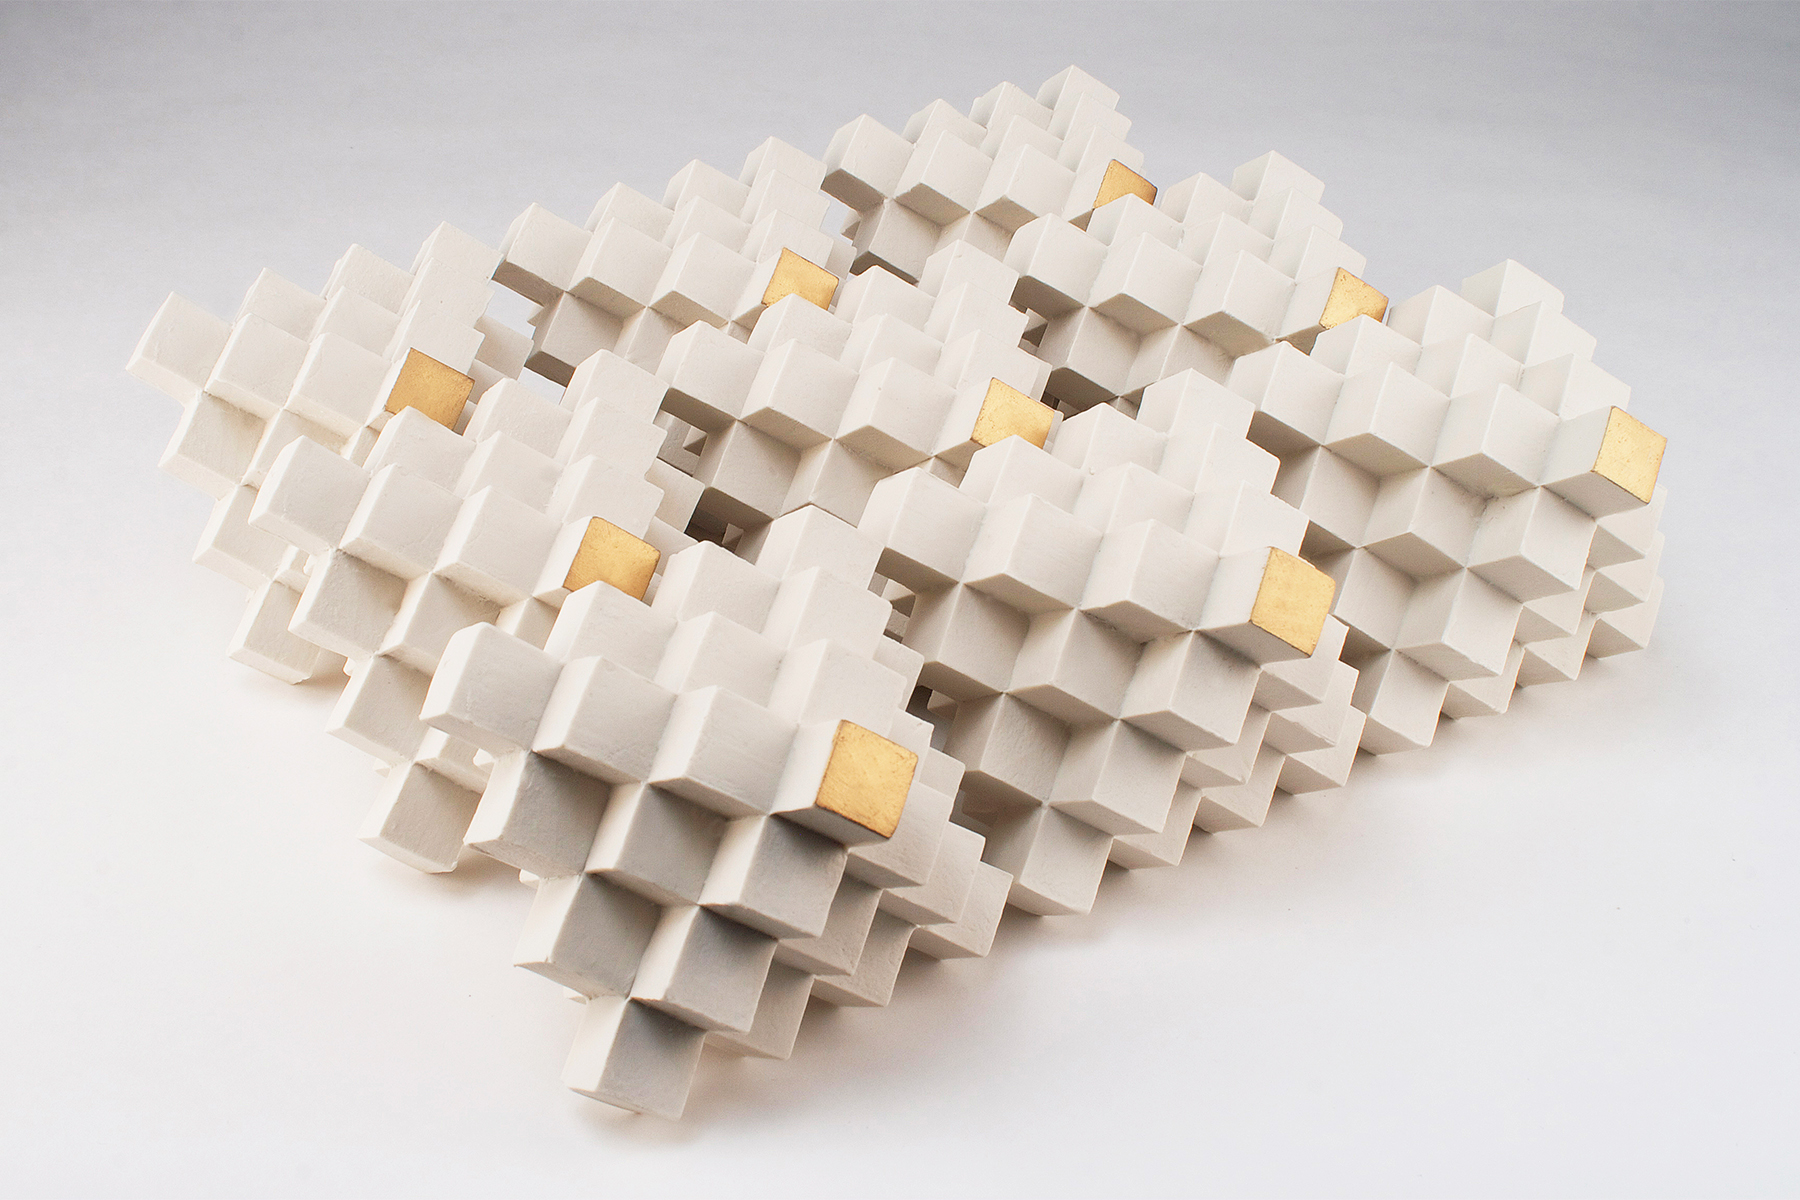 Cubic Series: Octahedrons  | Each:  5 x 5 x 5 inches  | Porcelain, Gold leaf  |  2016